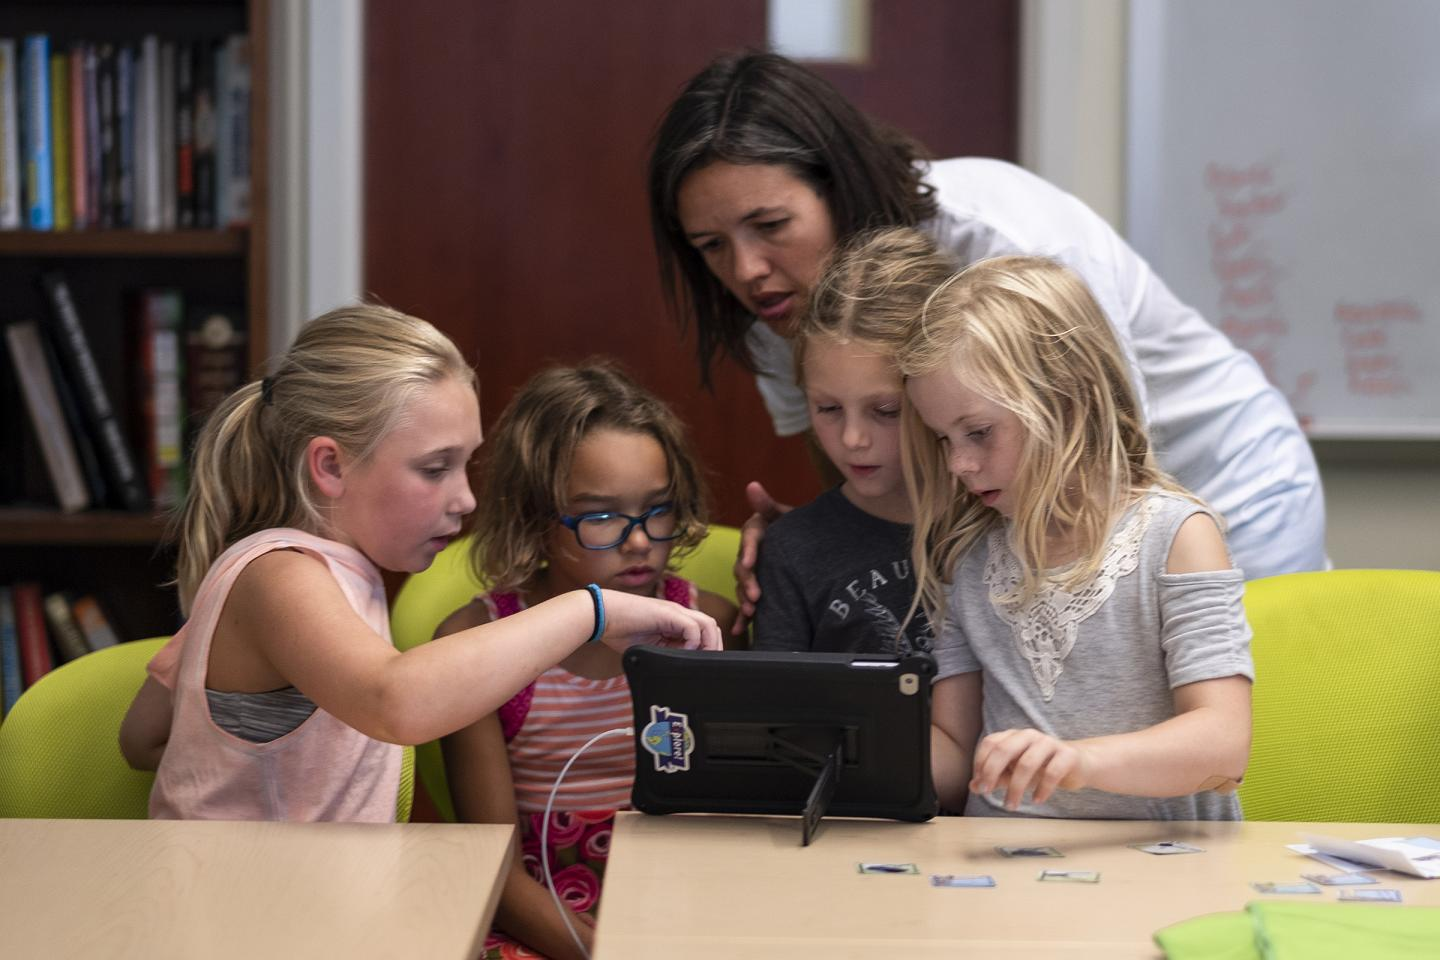 Award to Boost STEM Proficiency Through Augmented Reality